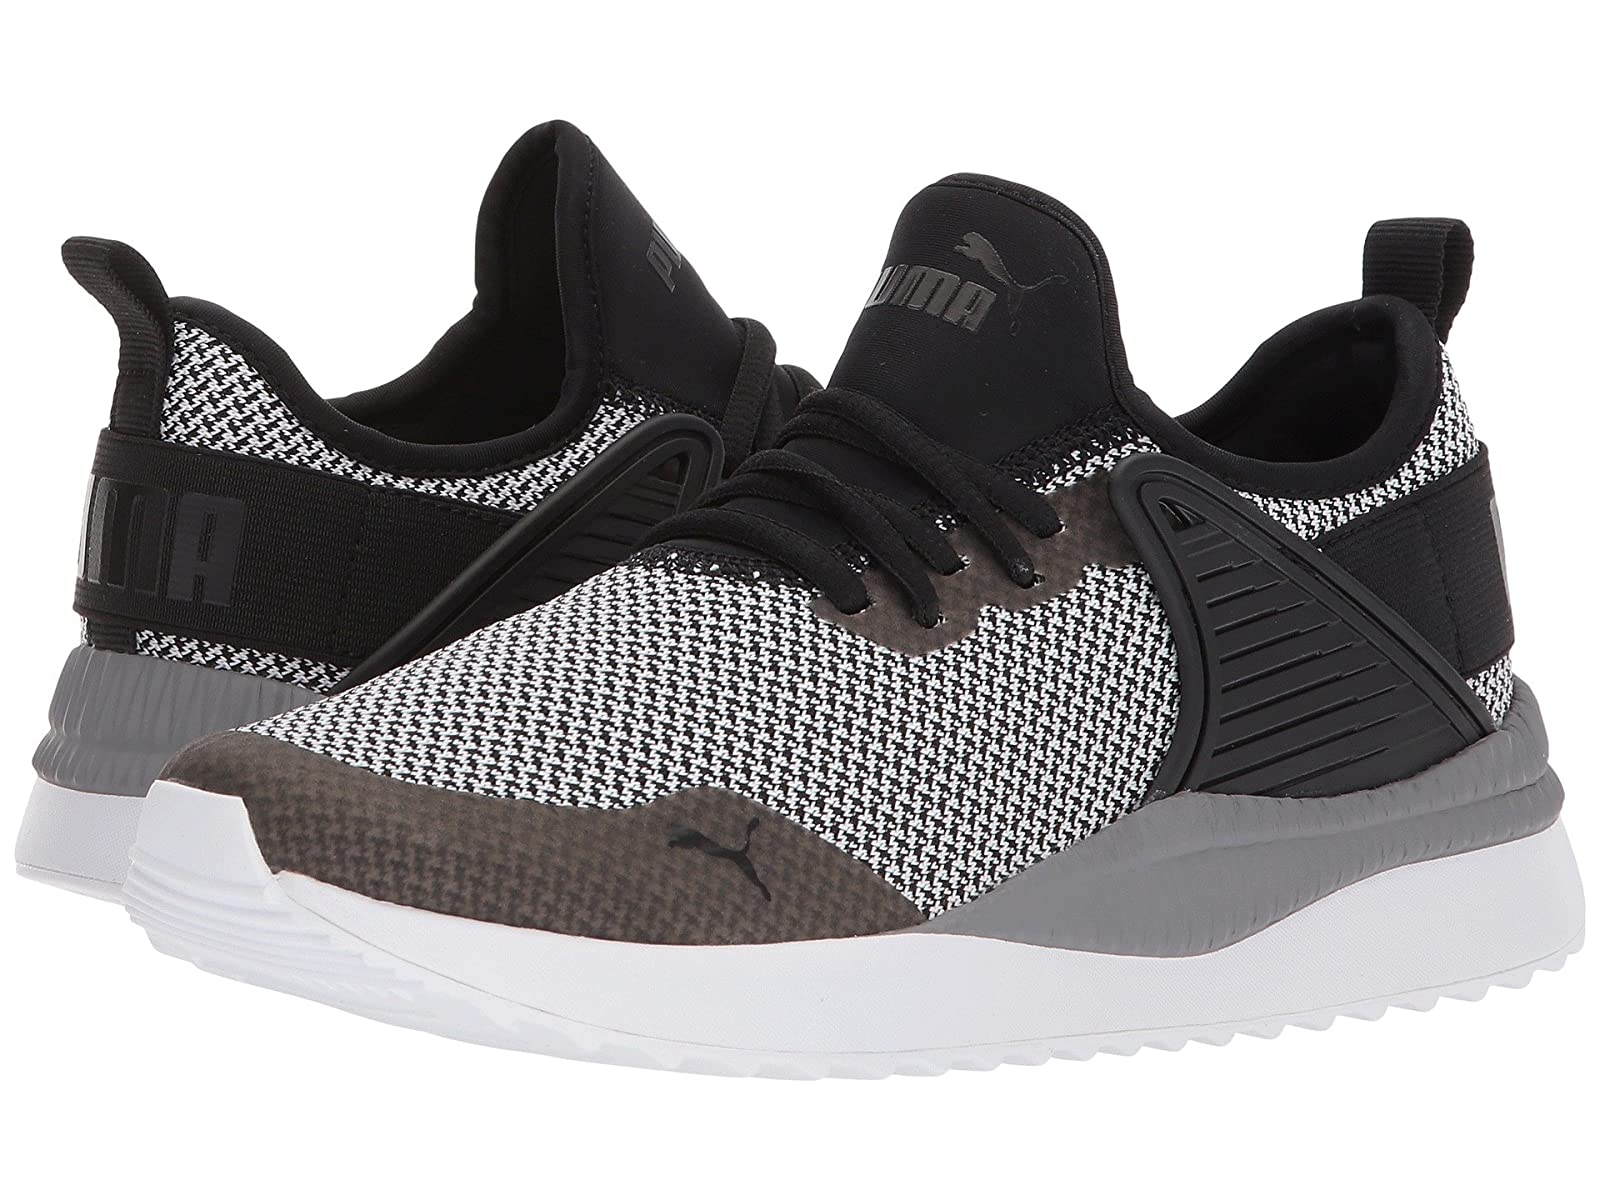 Puma Kids Pacer Next Cage GK (Big Kid)Atmospheric grades have affordable shoes